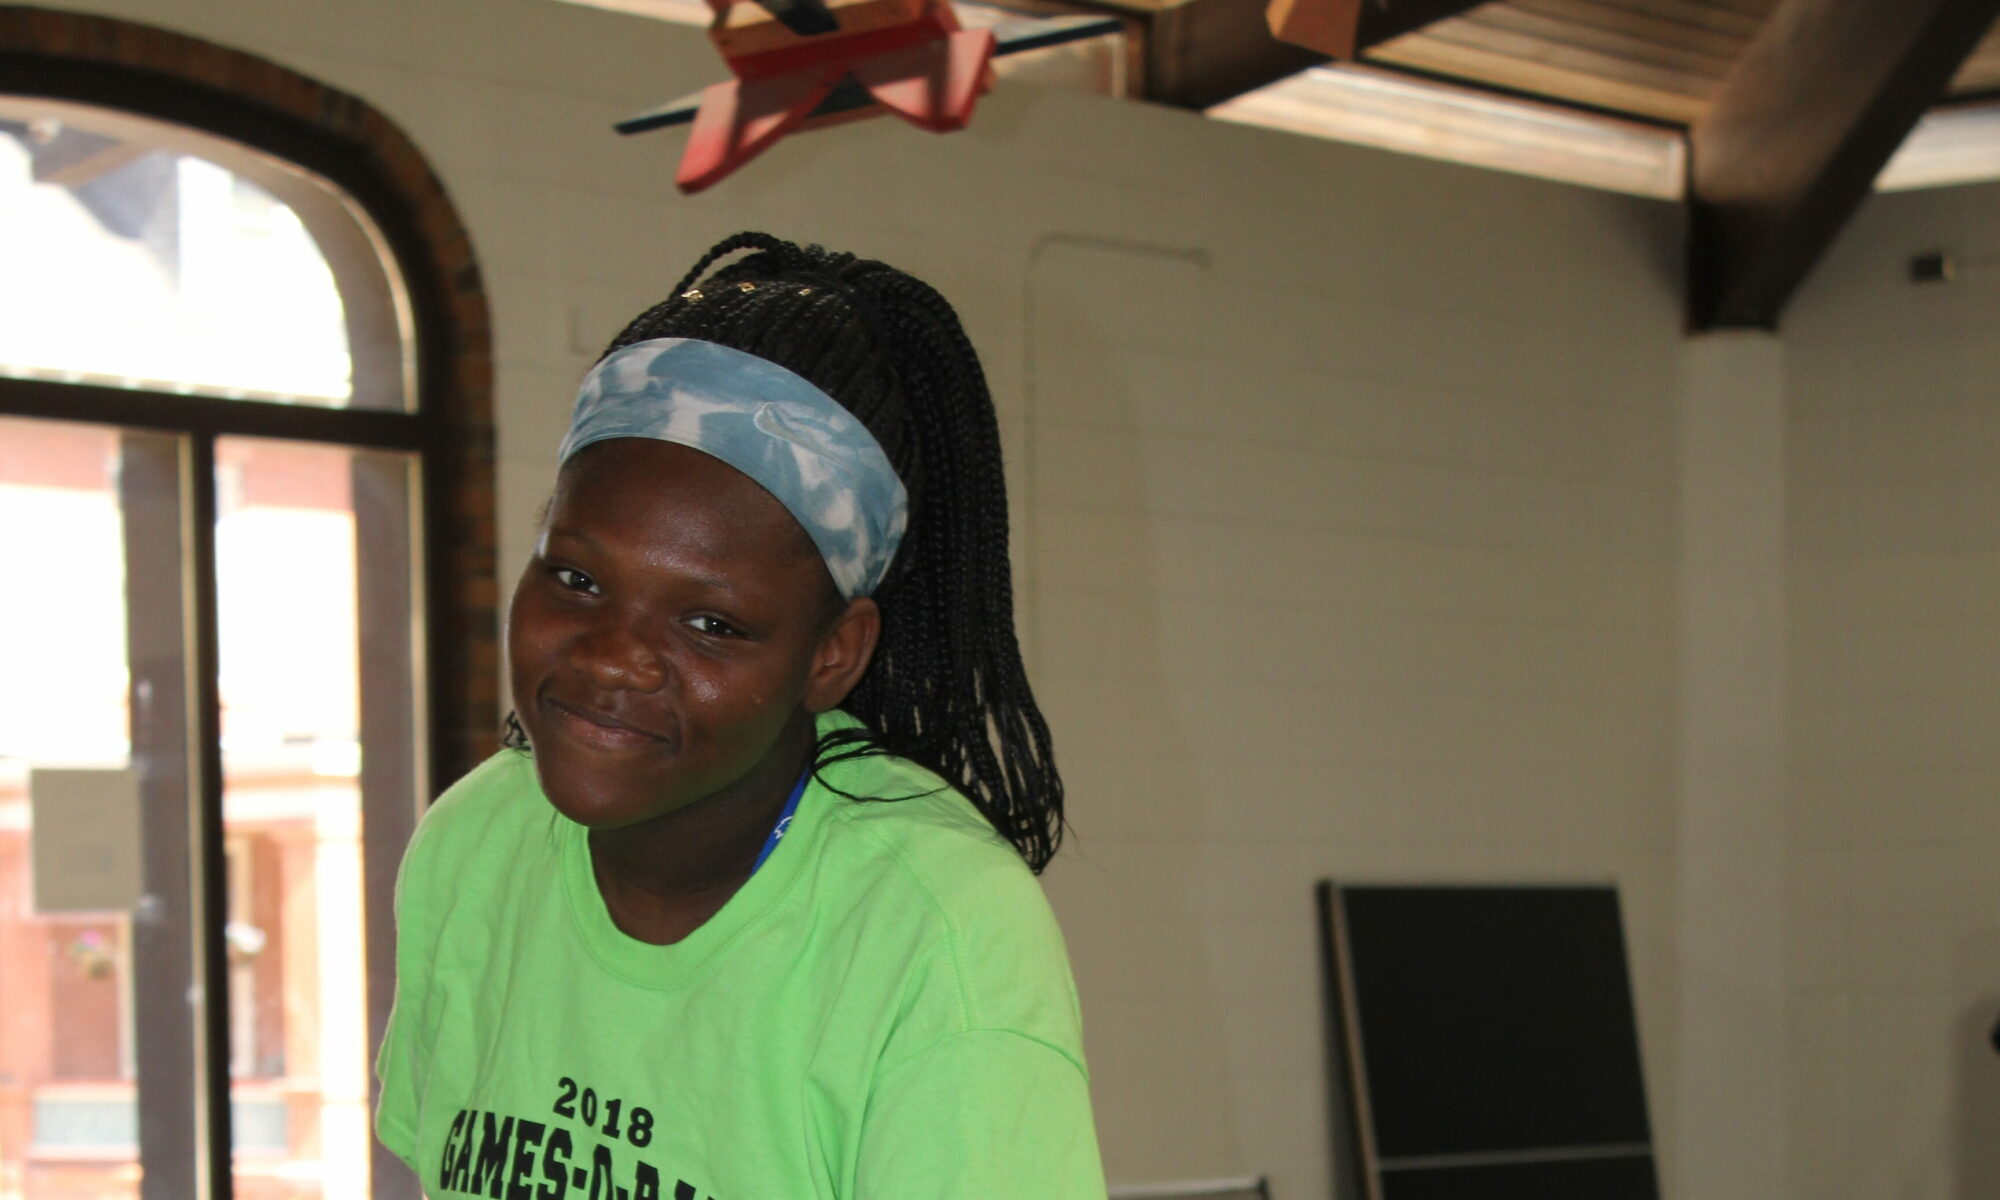 Young girl at Boys and girls club